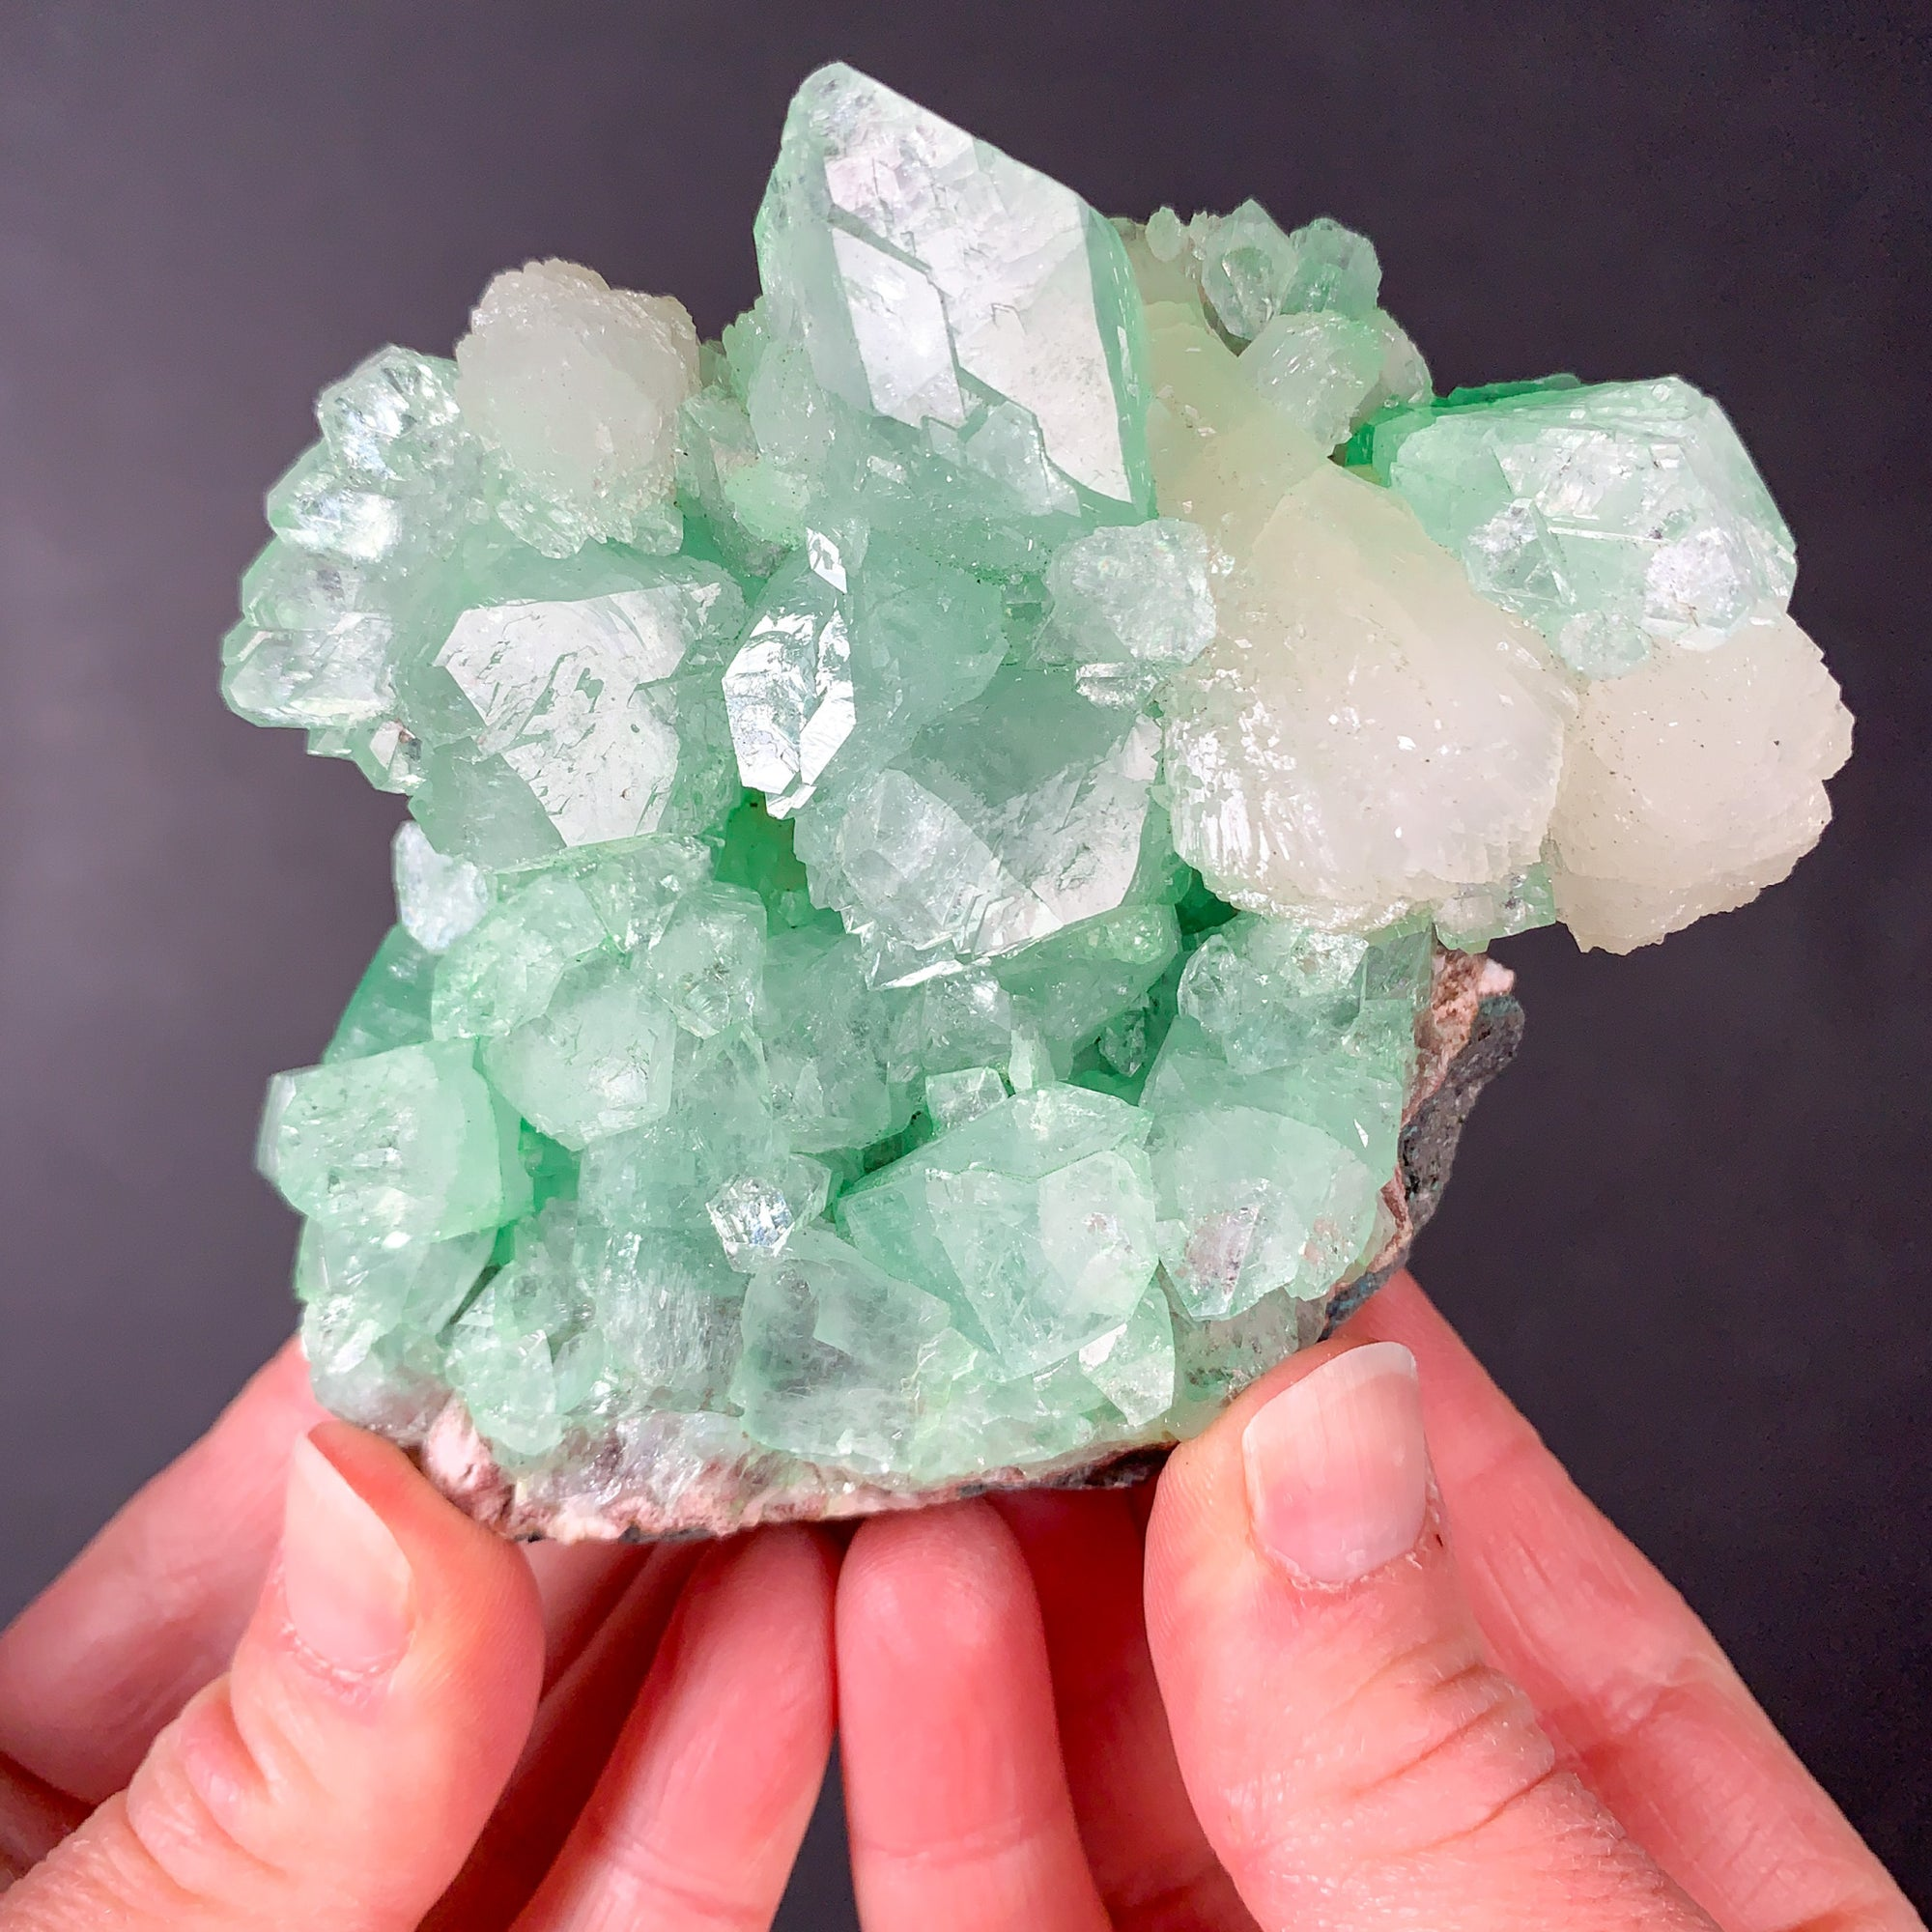 Green Apophyllite Crystals with White Stilbite